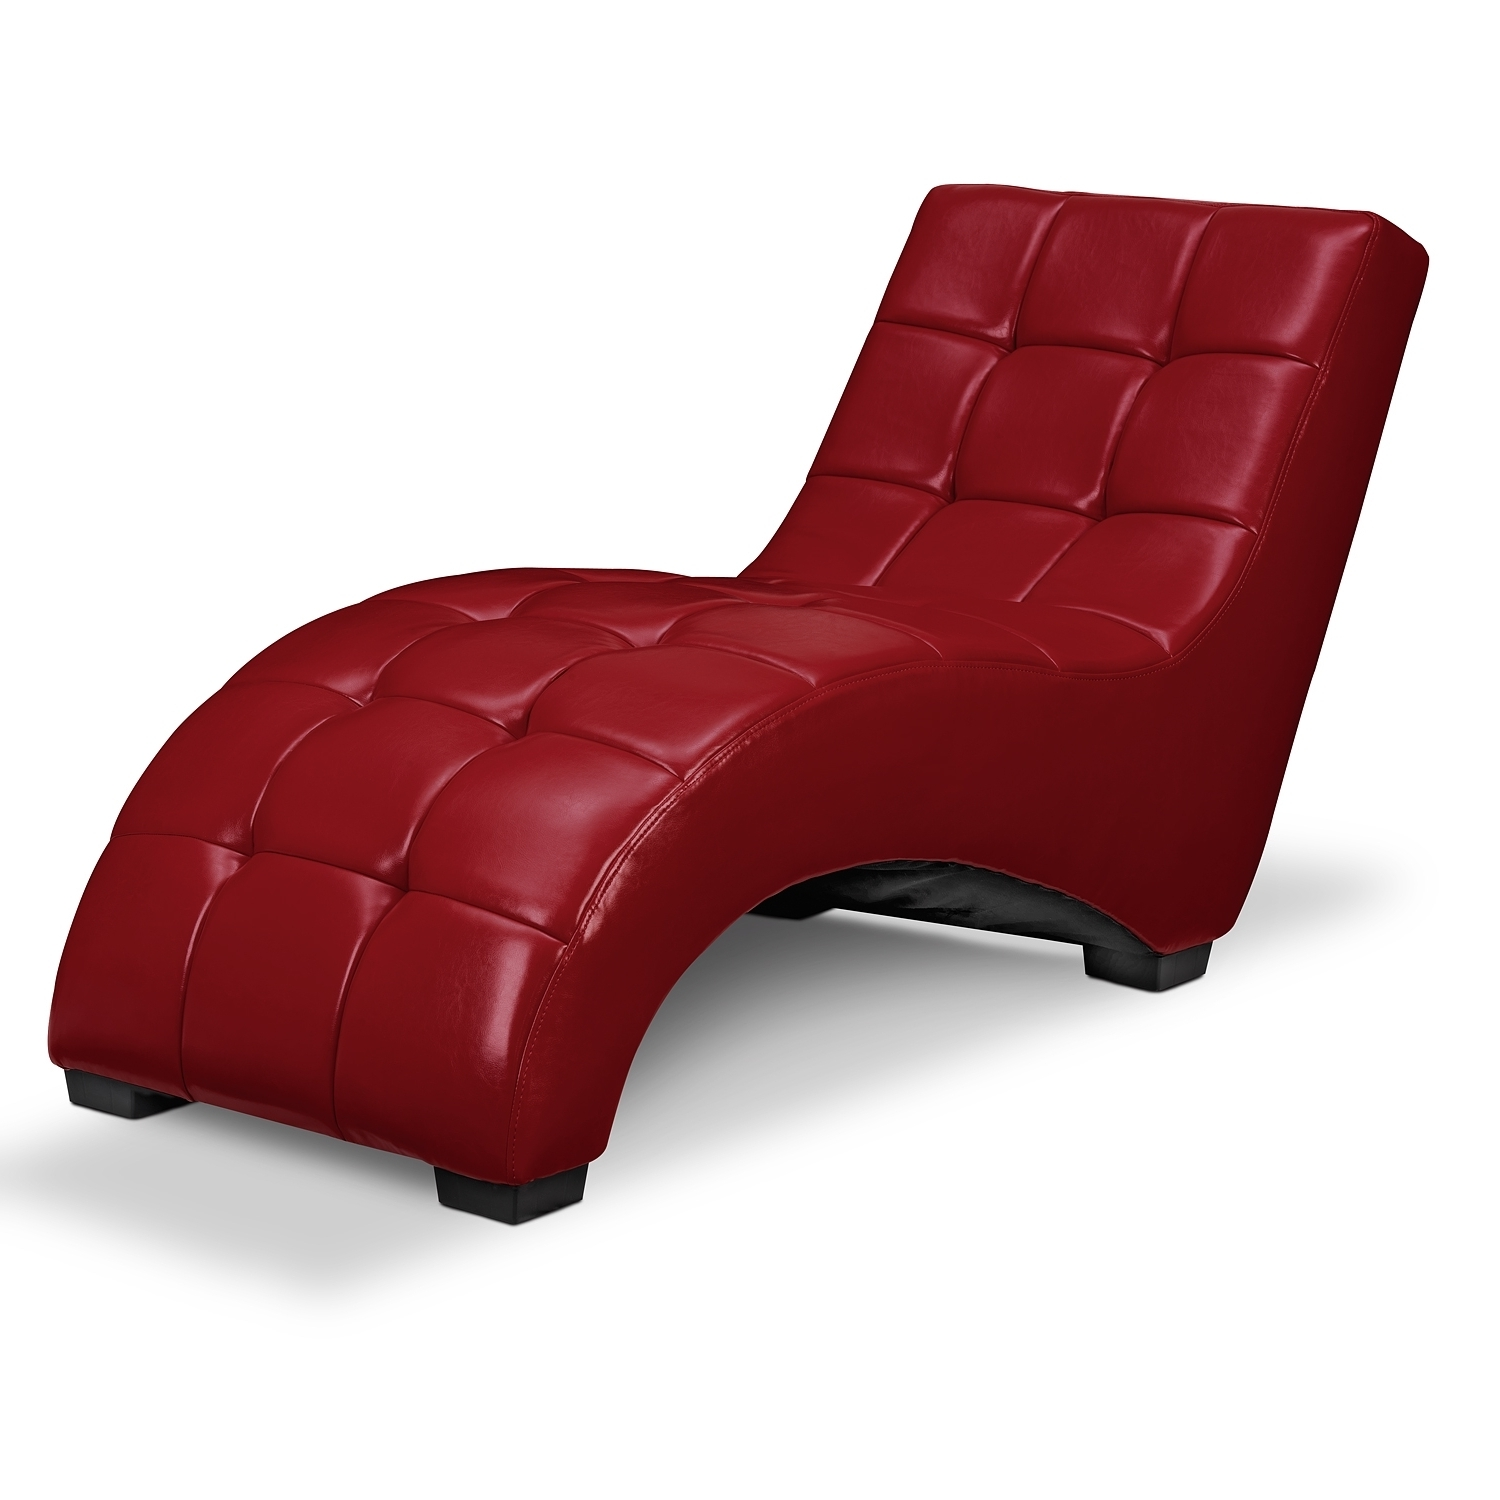 Trendy Really Exotic Designs And Decoration Red Chaise Lounge In The  Pertaining To Exotic Chaise Lounge